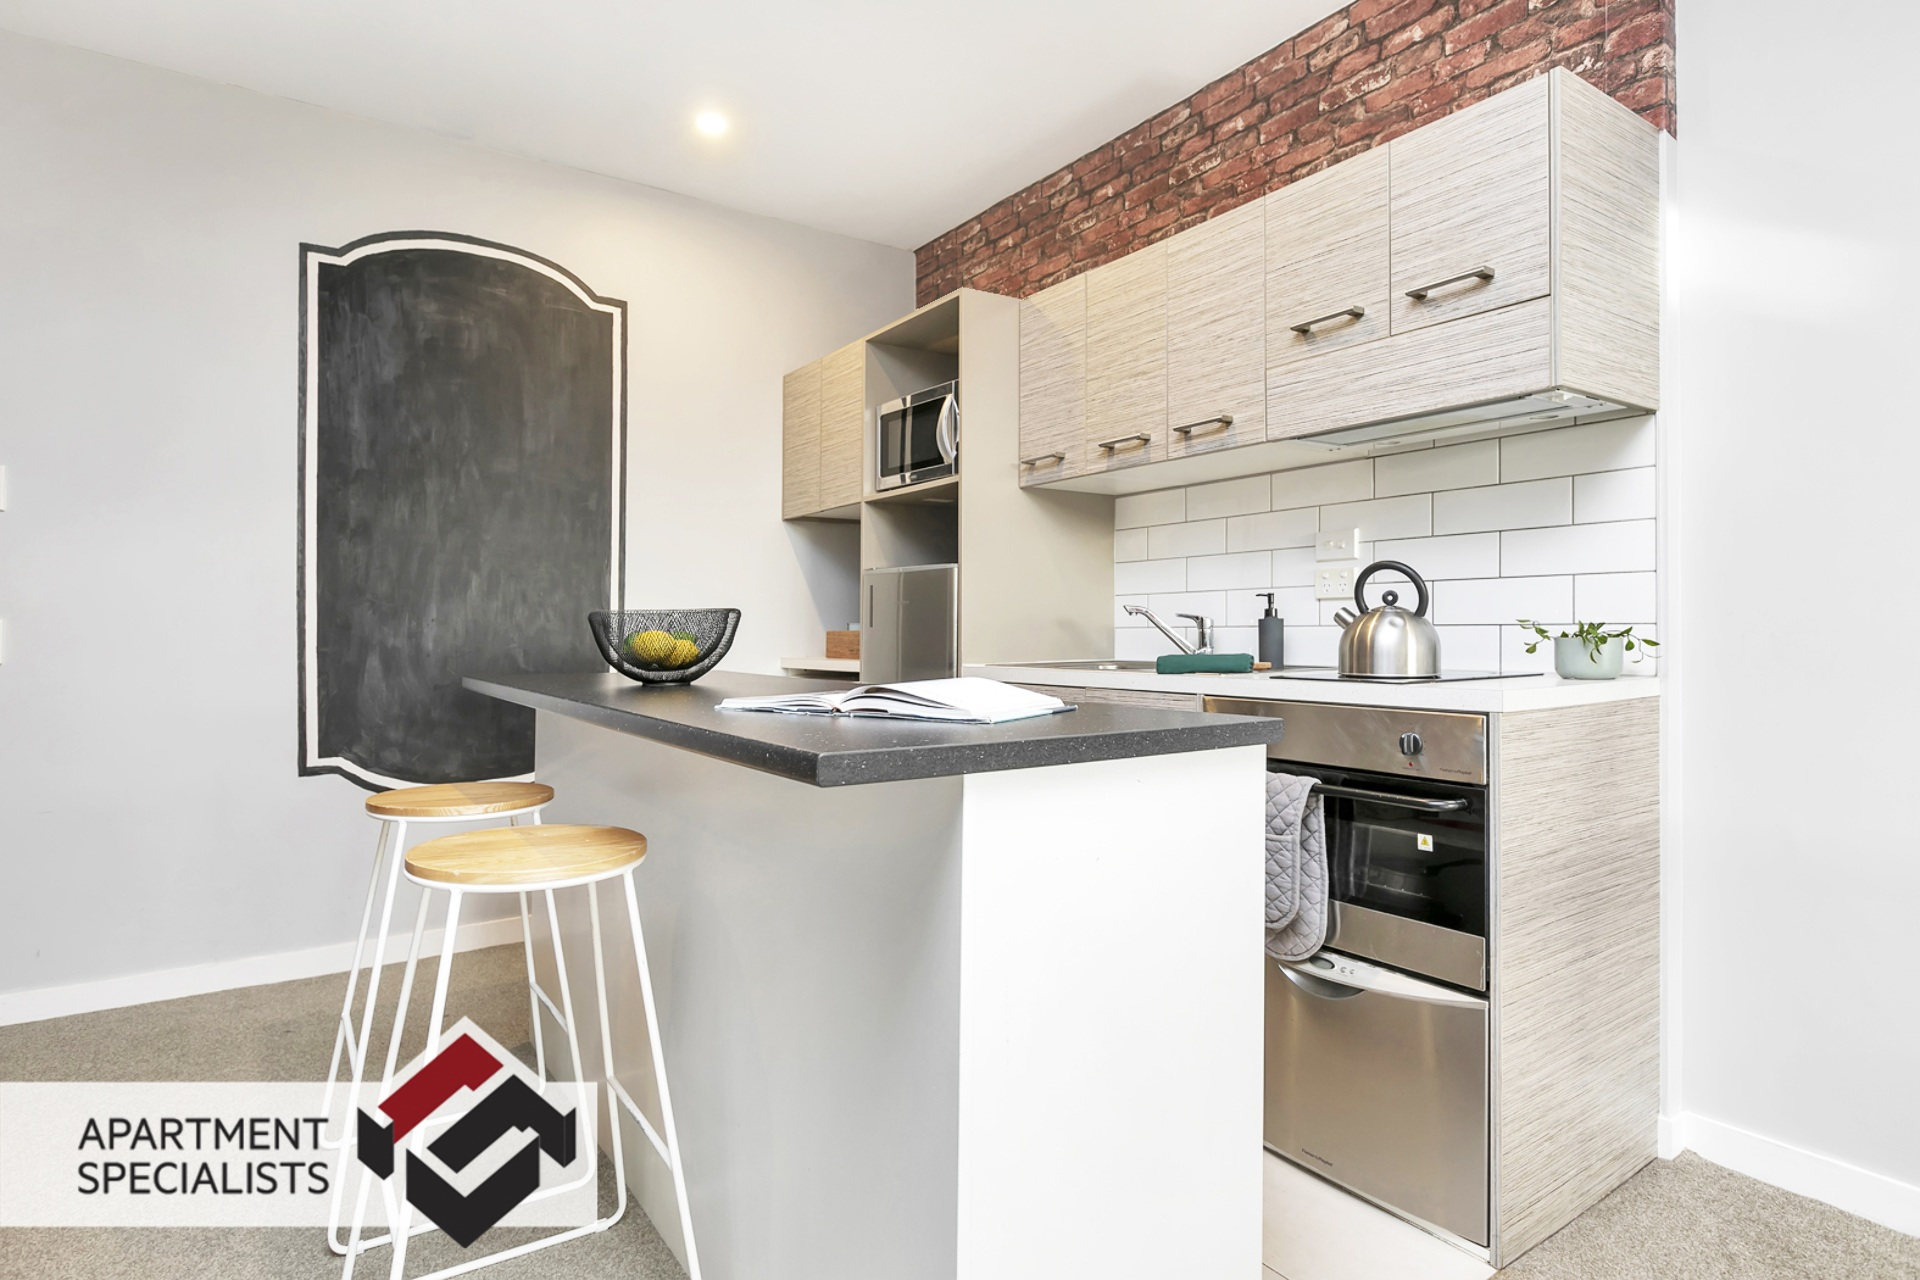 5 | 145 Symonds Street, City Centre | Apartment Specialists